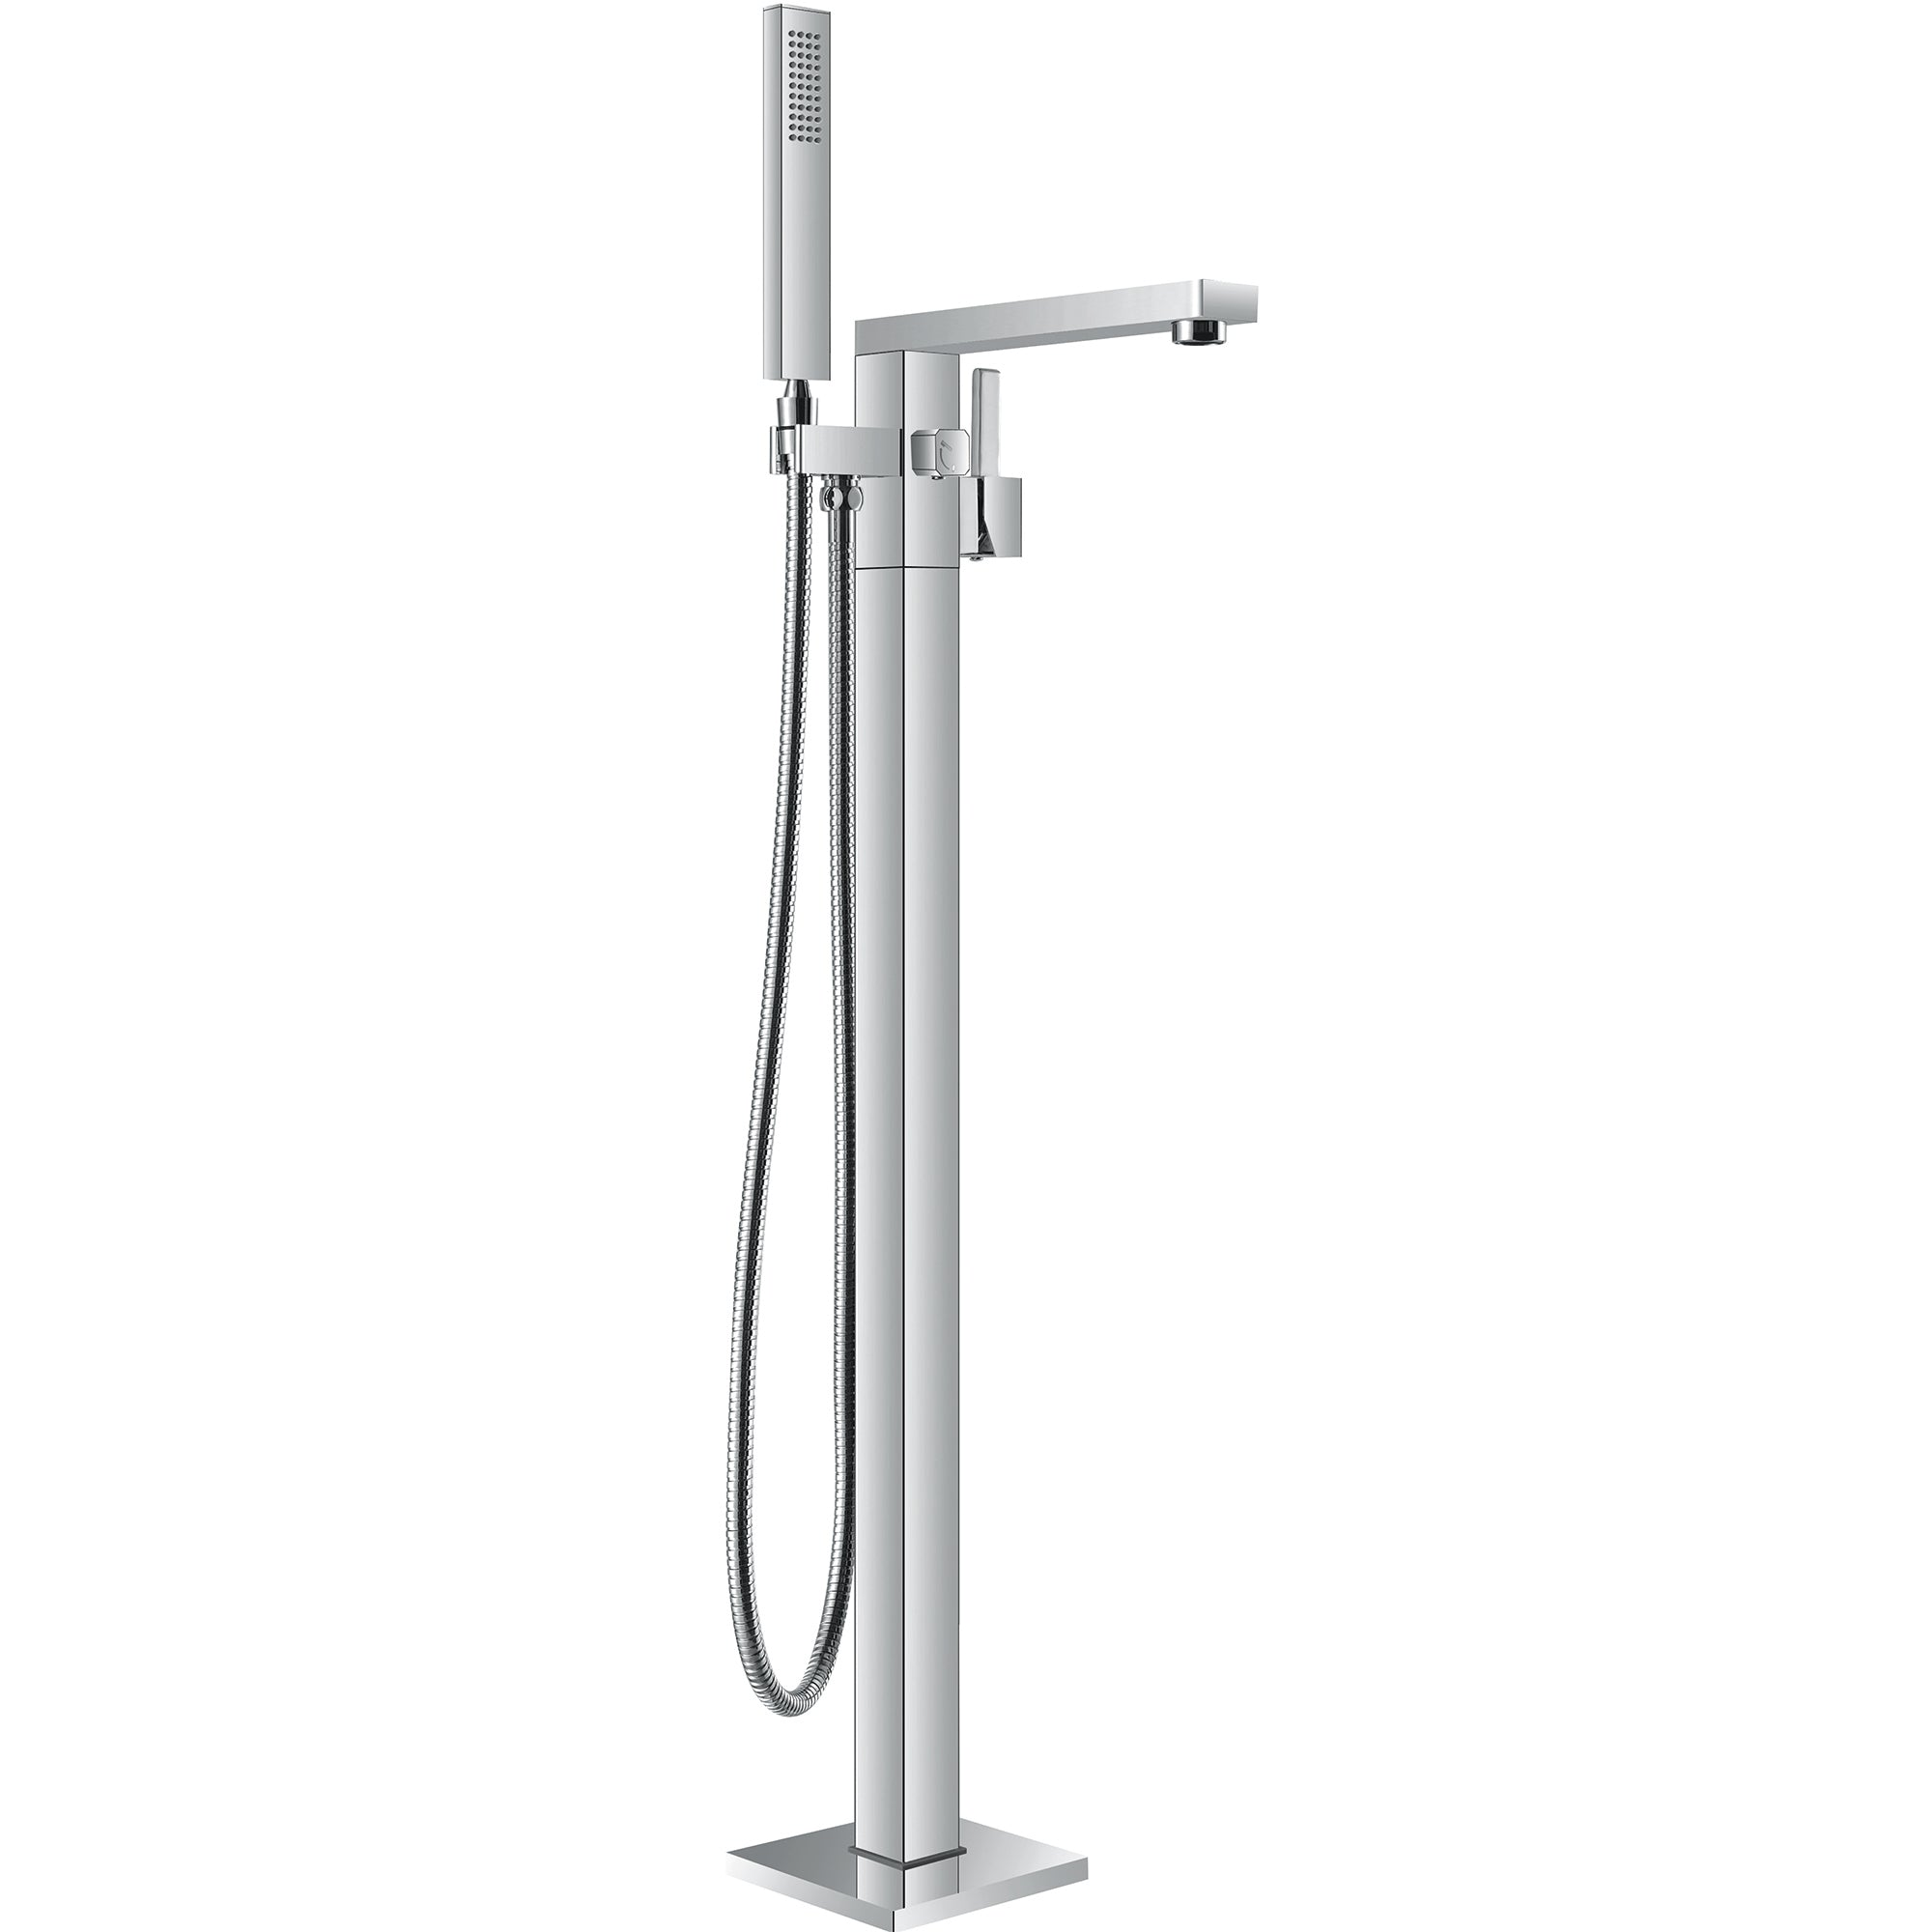 Brushed Nickel Free Standing Bathroom Shower Mixer Taps Floor ...